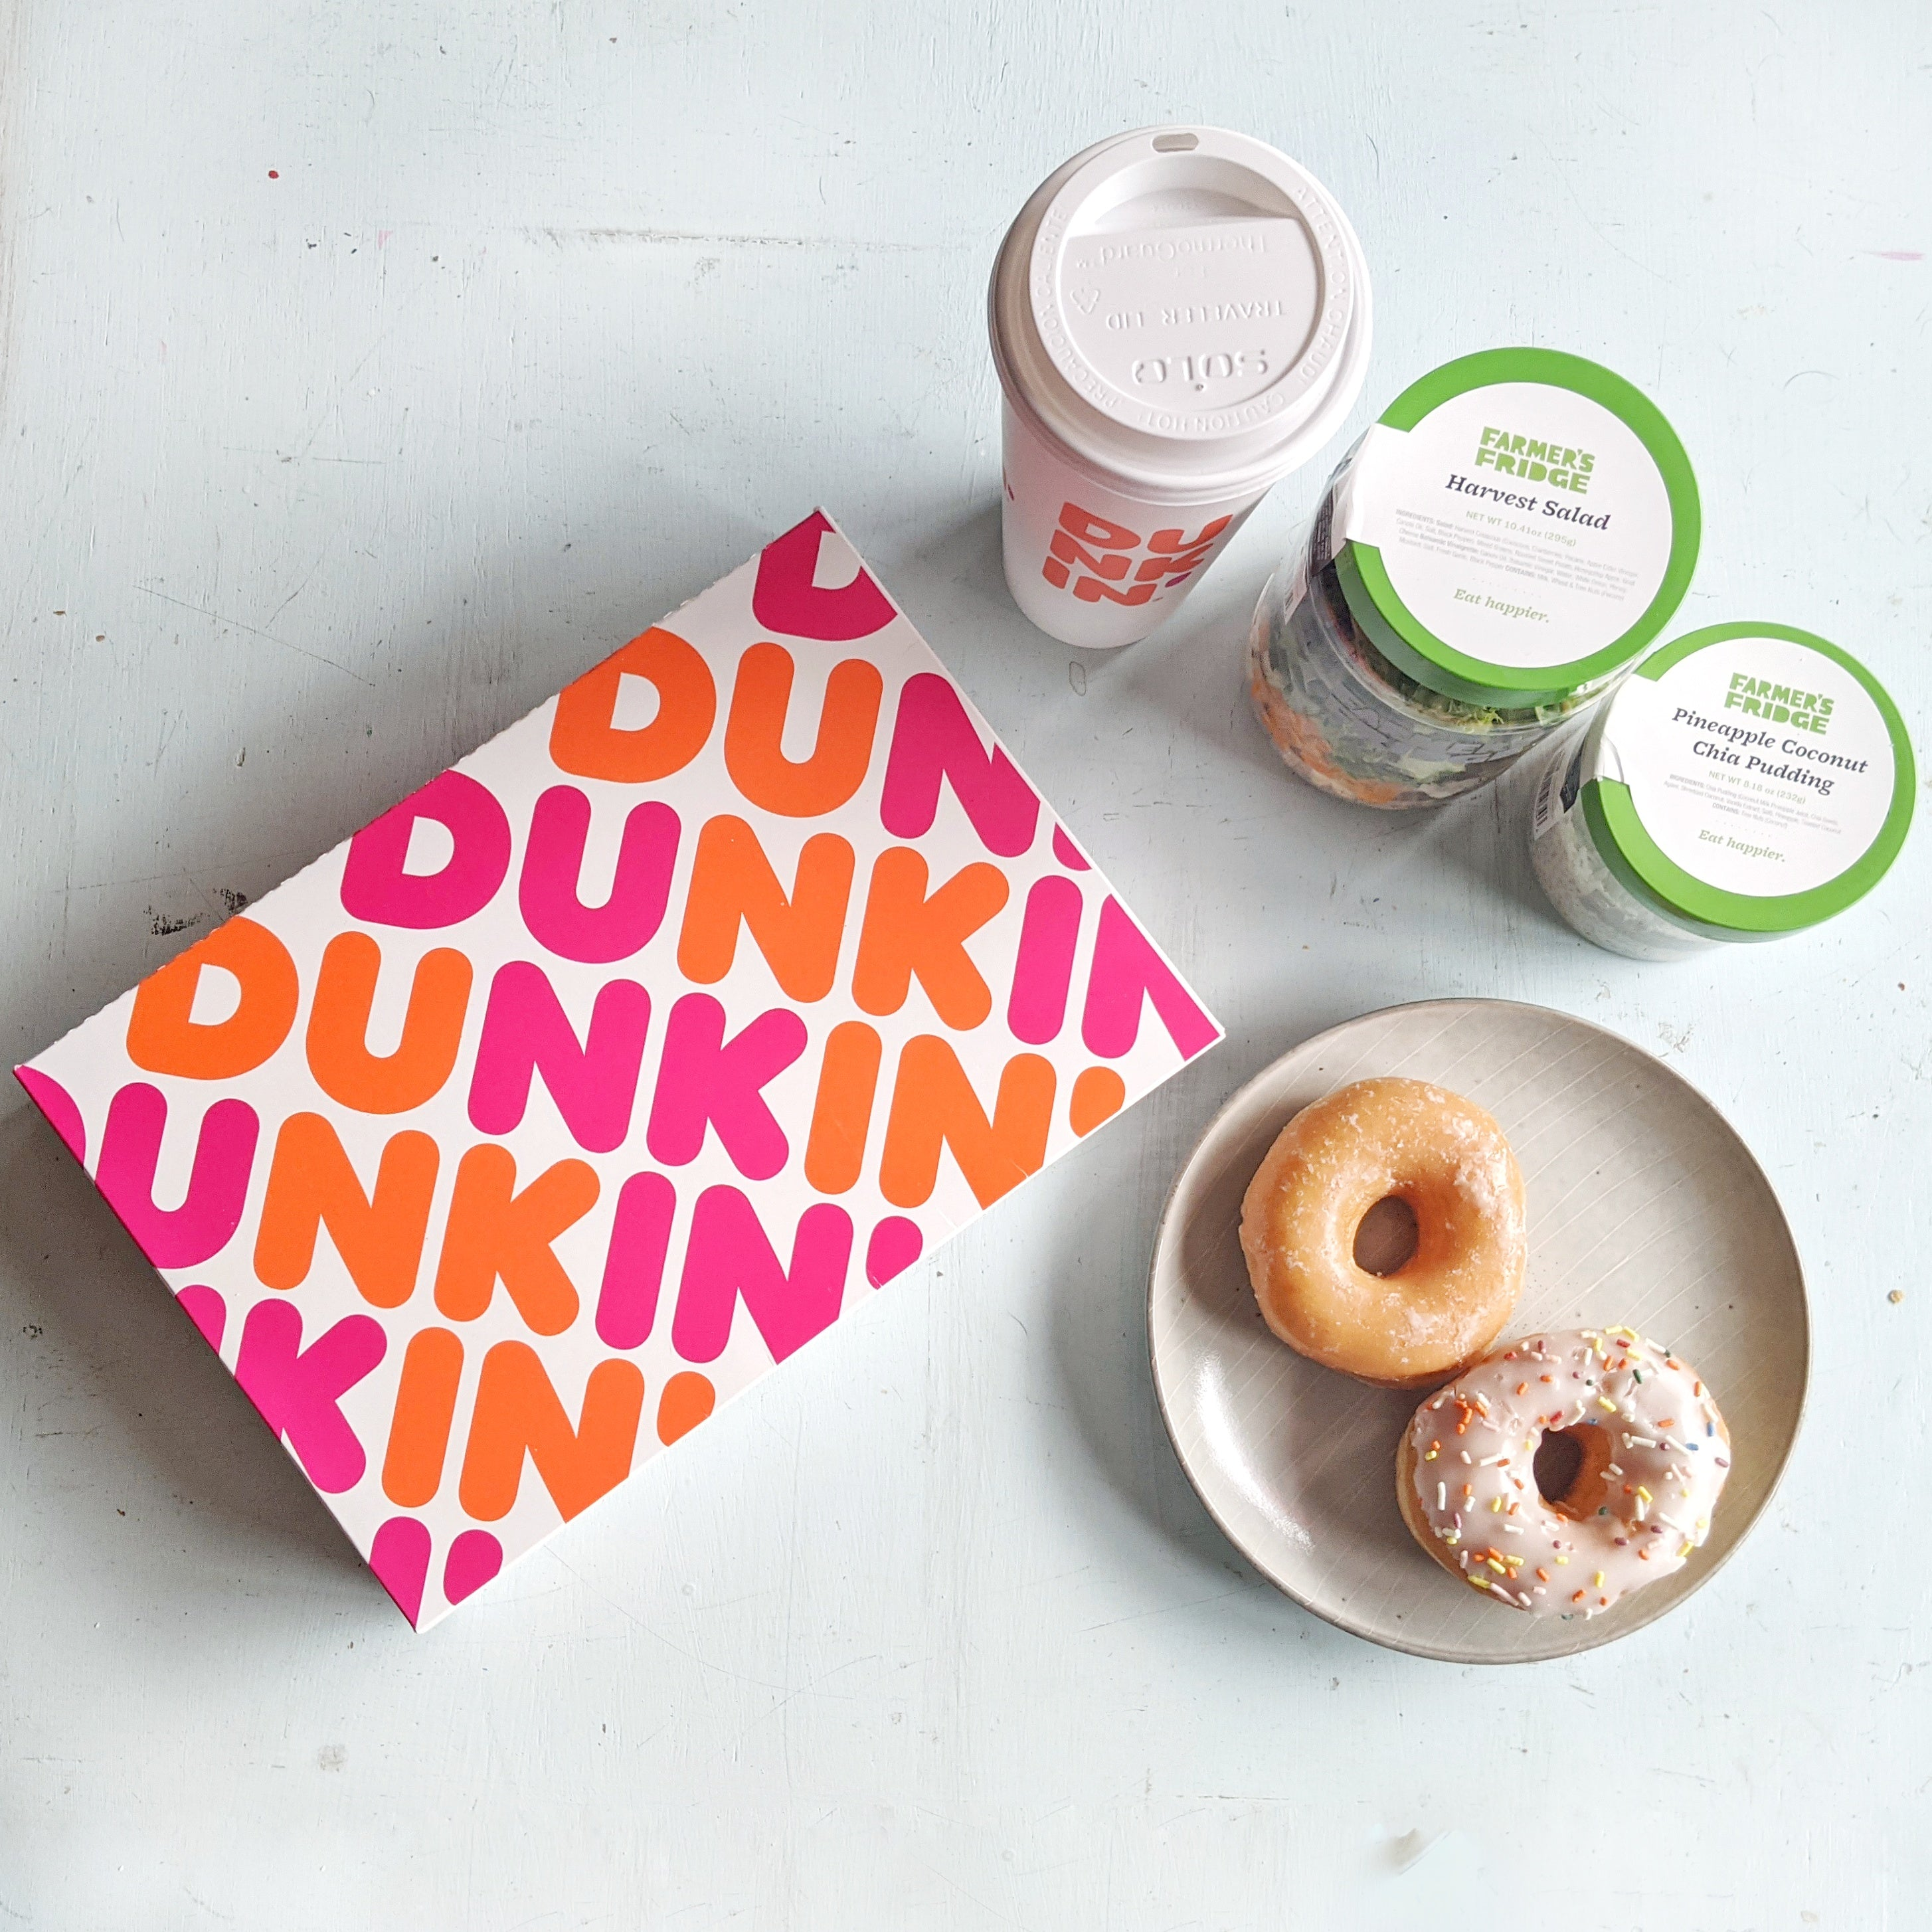 From left to right: Pink and orange Dunkin' Donuts box, a Dunkin Donut's coffee cup, two Farmer's Fridge jars. Below the jar is a small, round plate with two doughnuts on it.